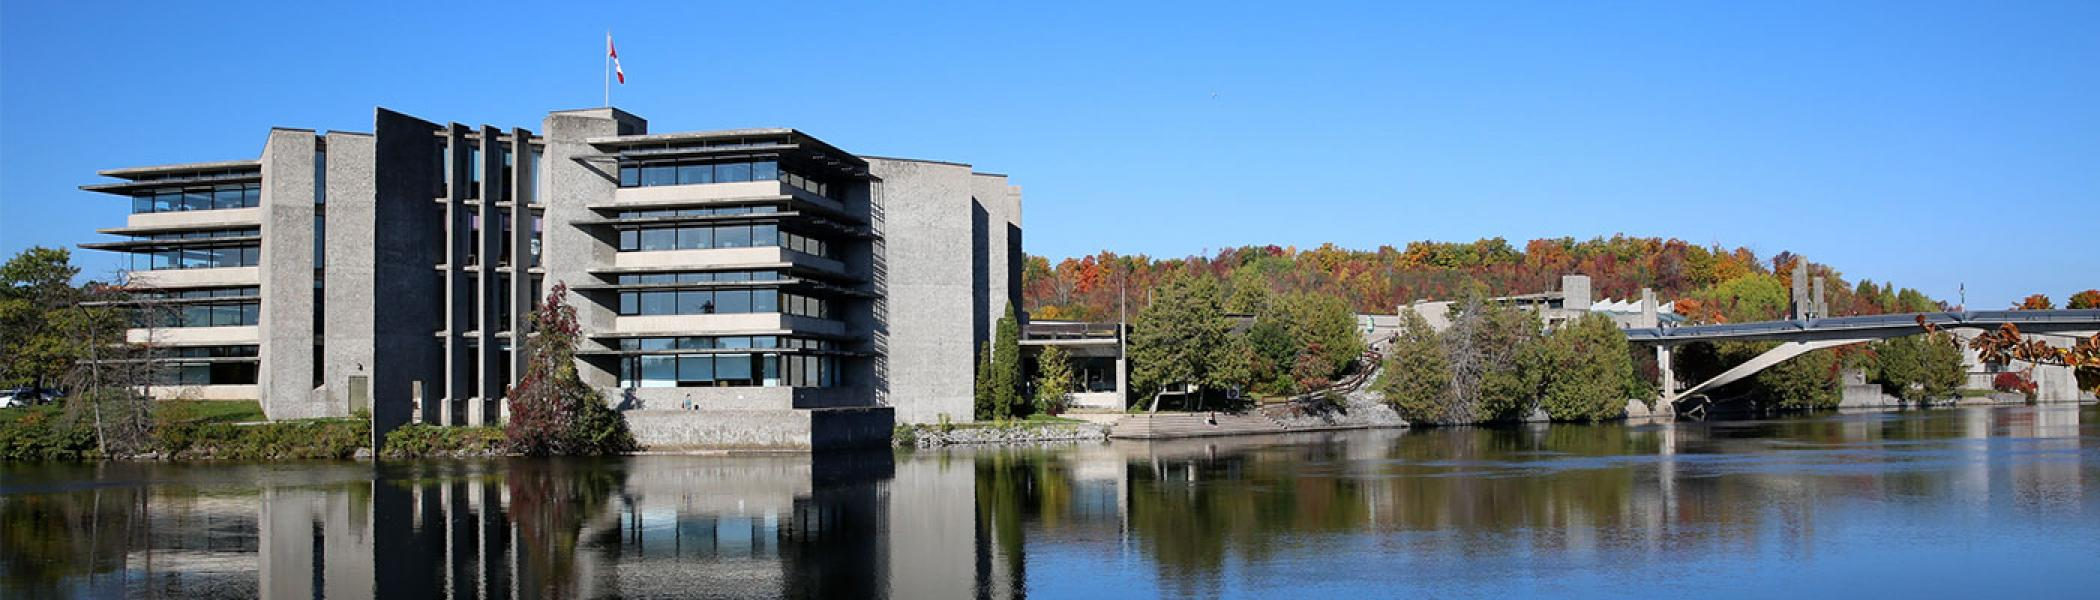 Bata library in the fall taken from across the Otonabee river.